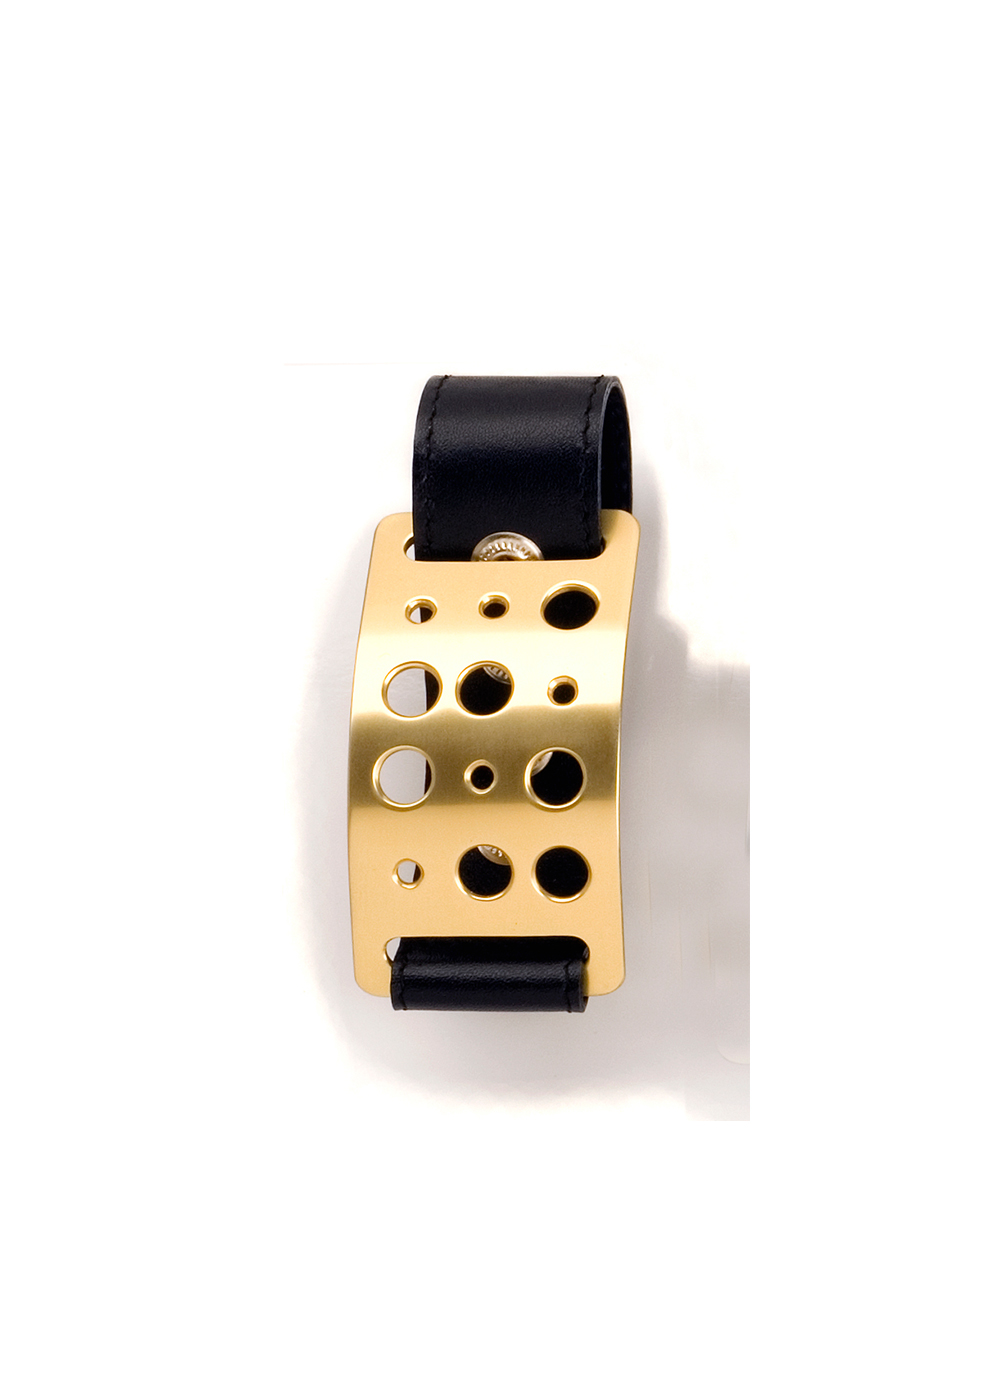 Simple Code Wrist Buckle, gold